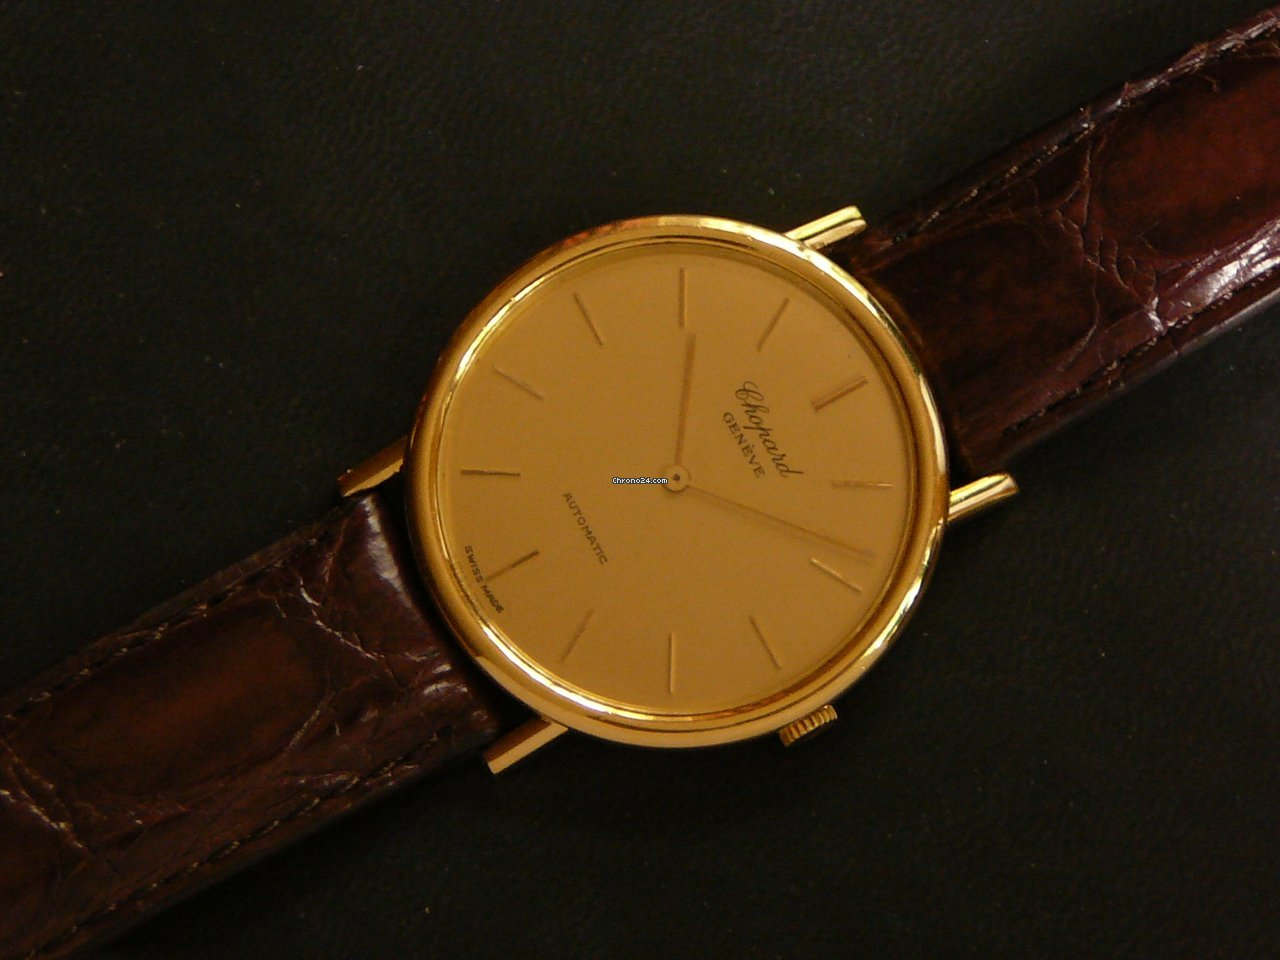 Chopard L.U.C. 18K YG Ultra Thin automatic dress watch, Ø 35 mm